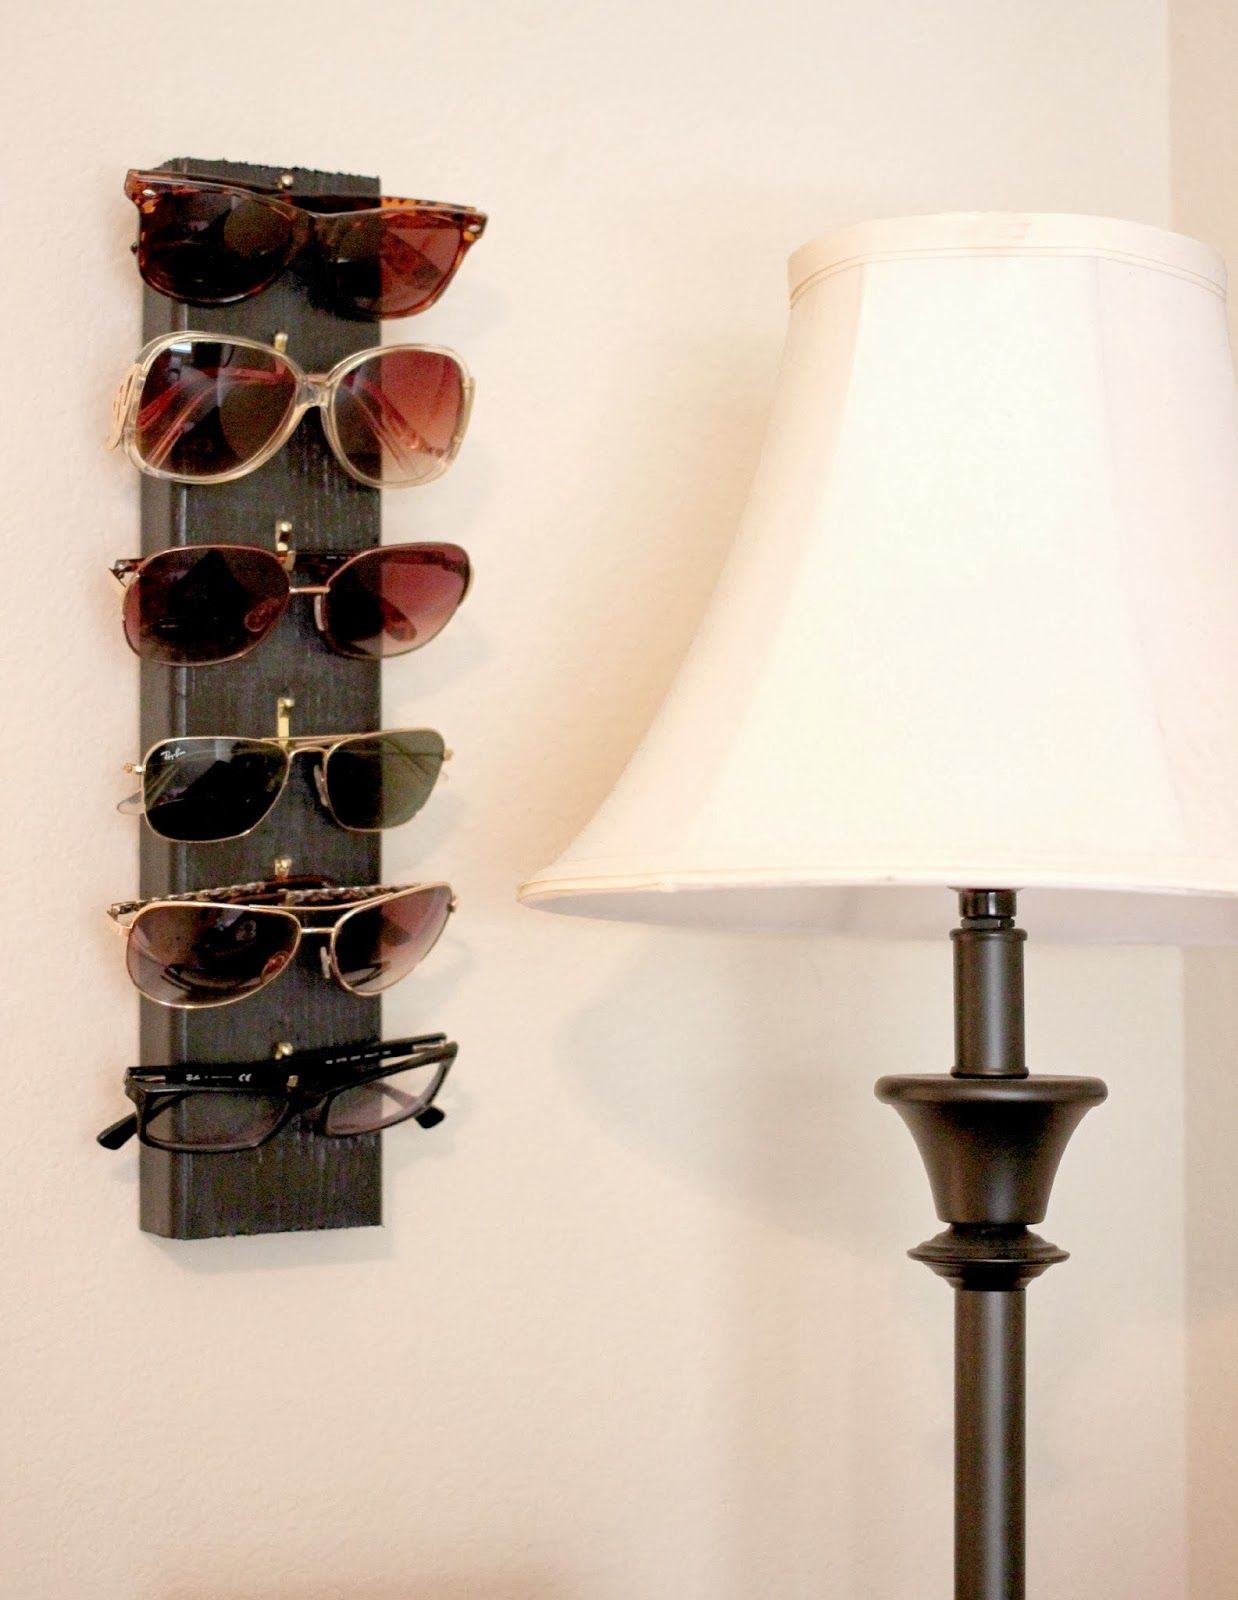 014b93ea0e2 An easy diy project to hang all your sunglasses you just need some picture  hangers and a piece of wood!